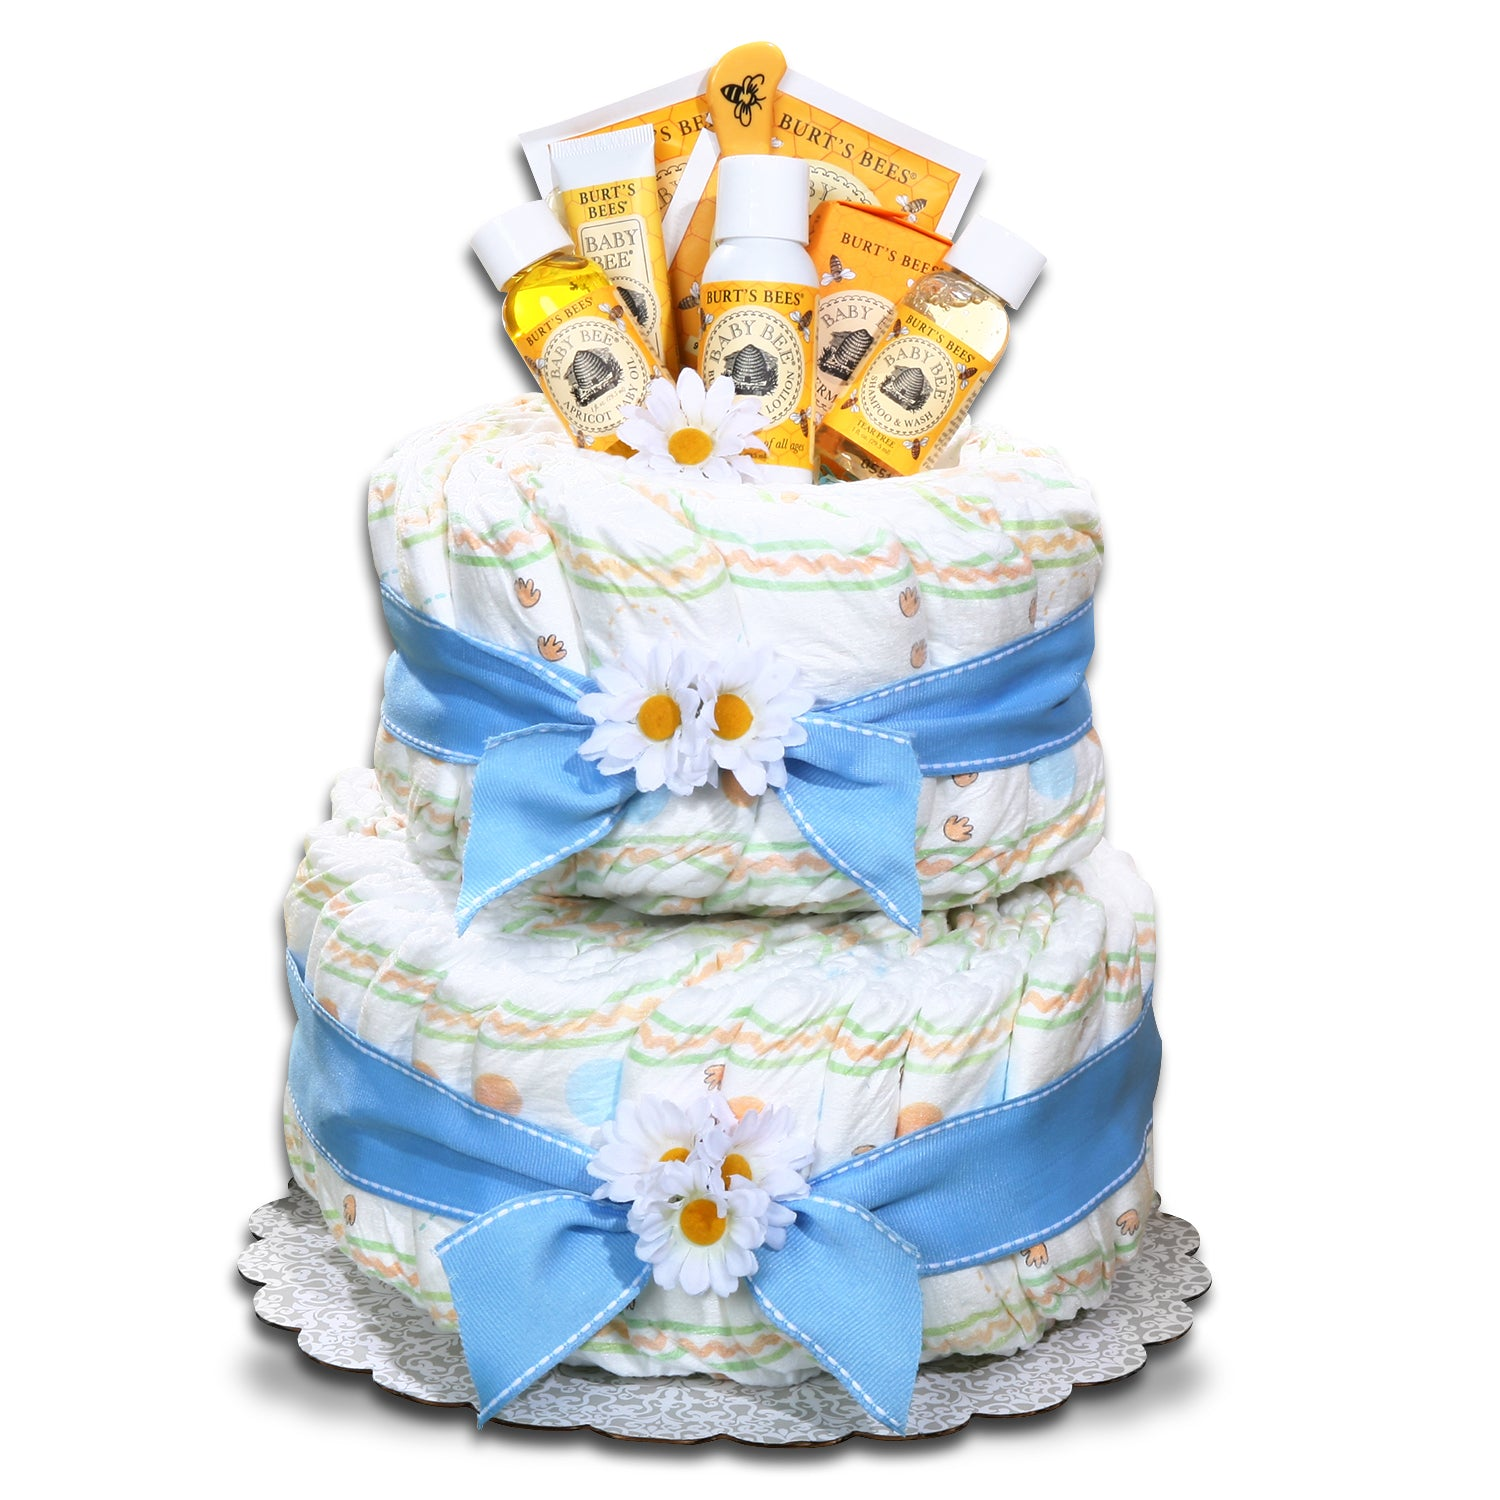 Burt's Bees Diaper Cake for Boy Baby Gift